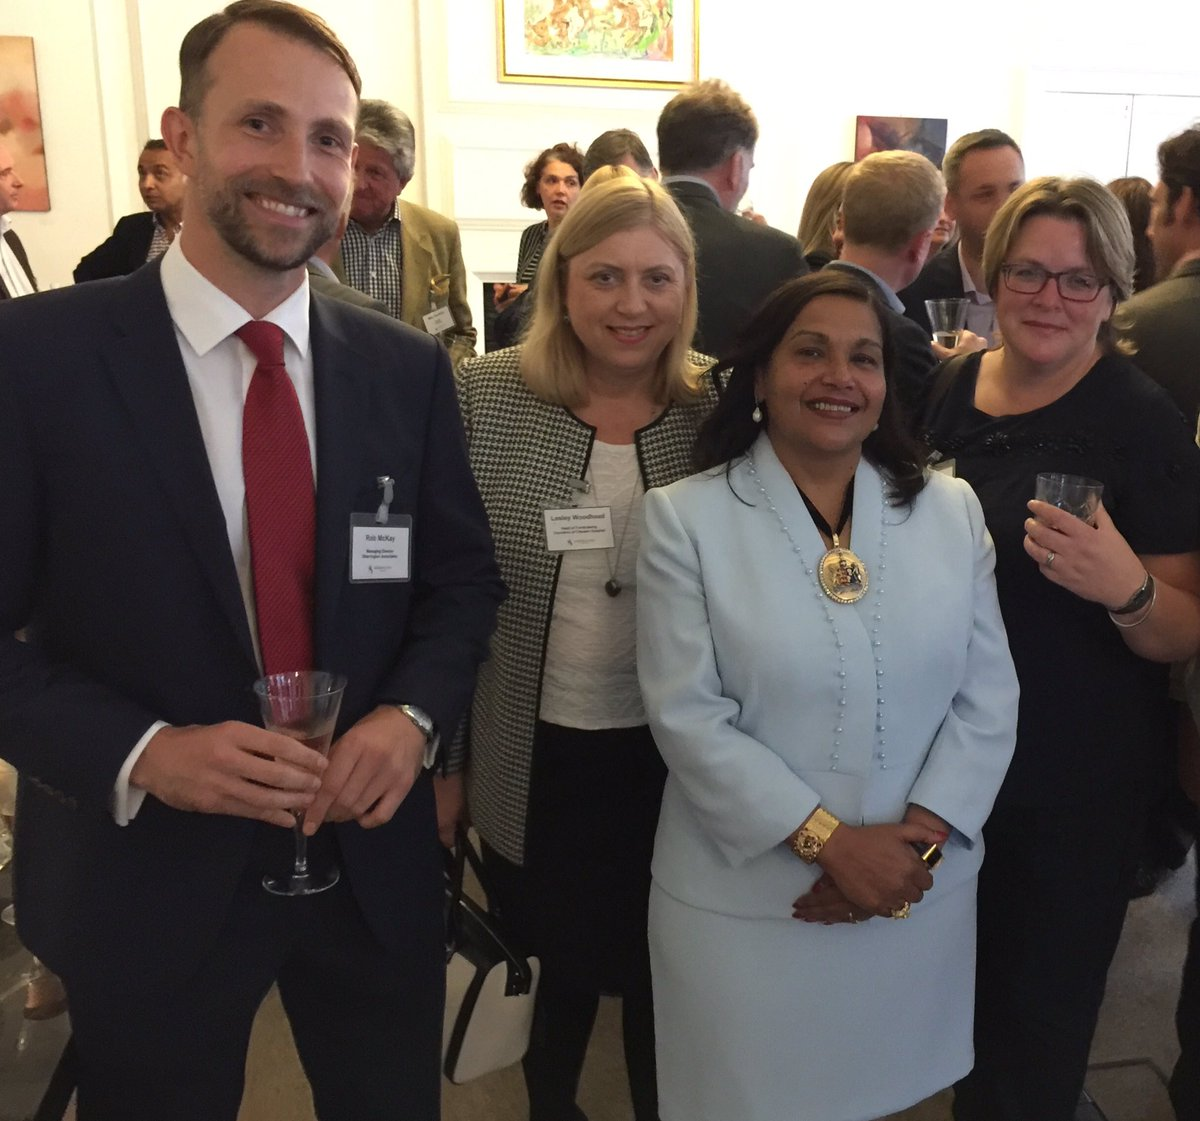 Lord Mayor of #Chester was delighted to attend Sherrington Associates Autumn Reception...@Thetalentscouts<br>http://pic.twitter.com/z1IyCaqq2r